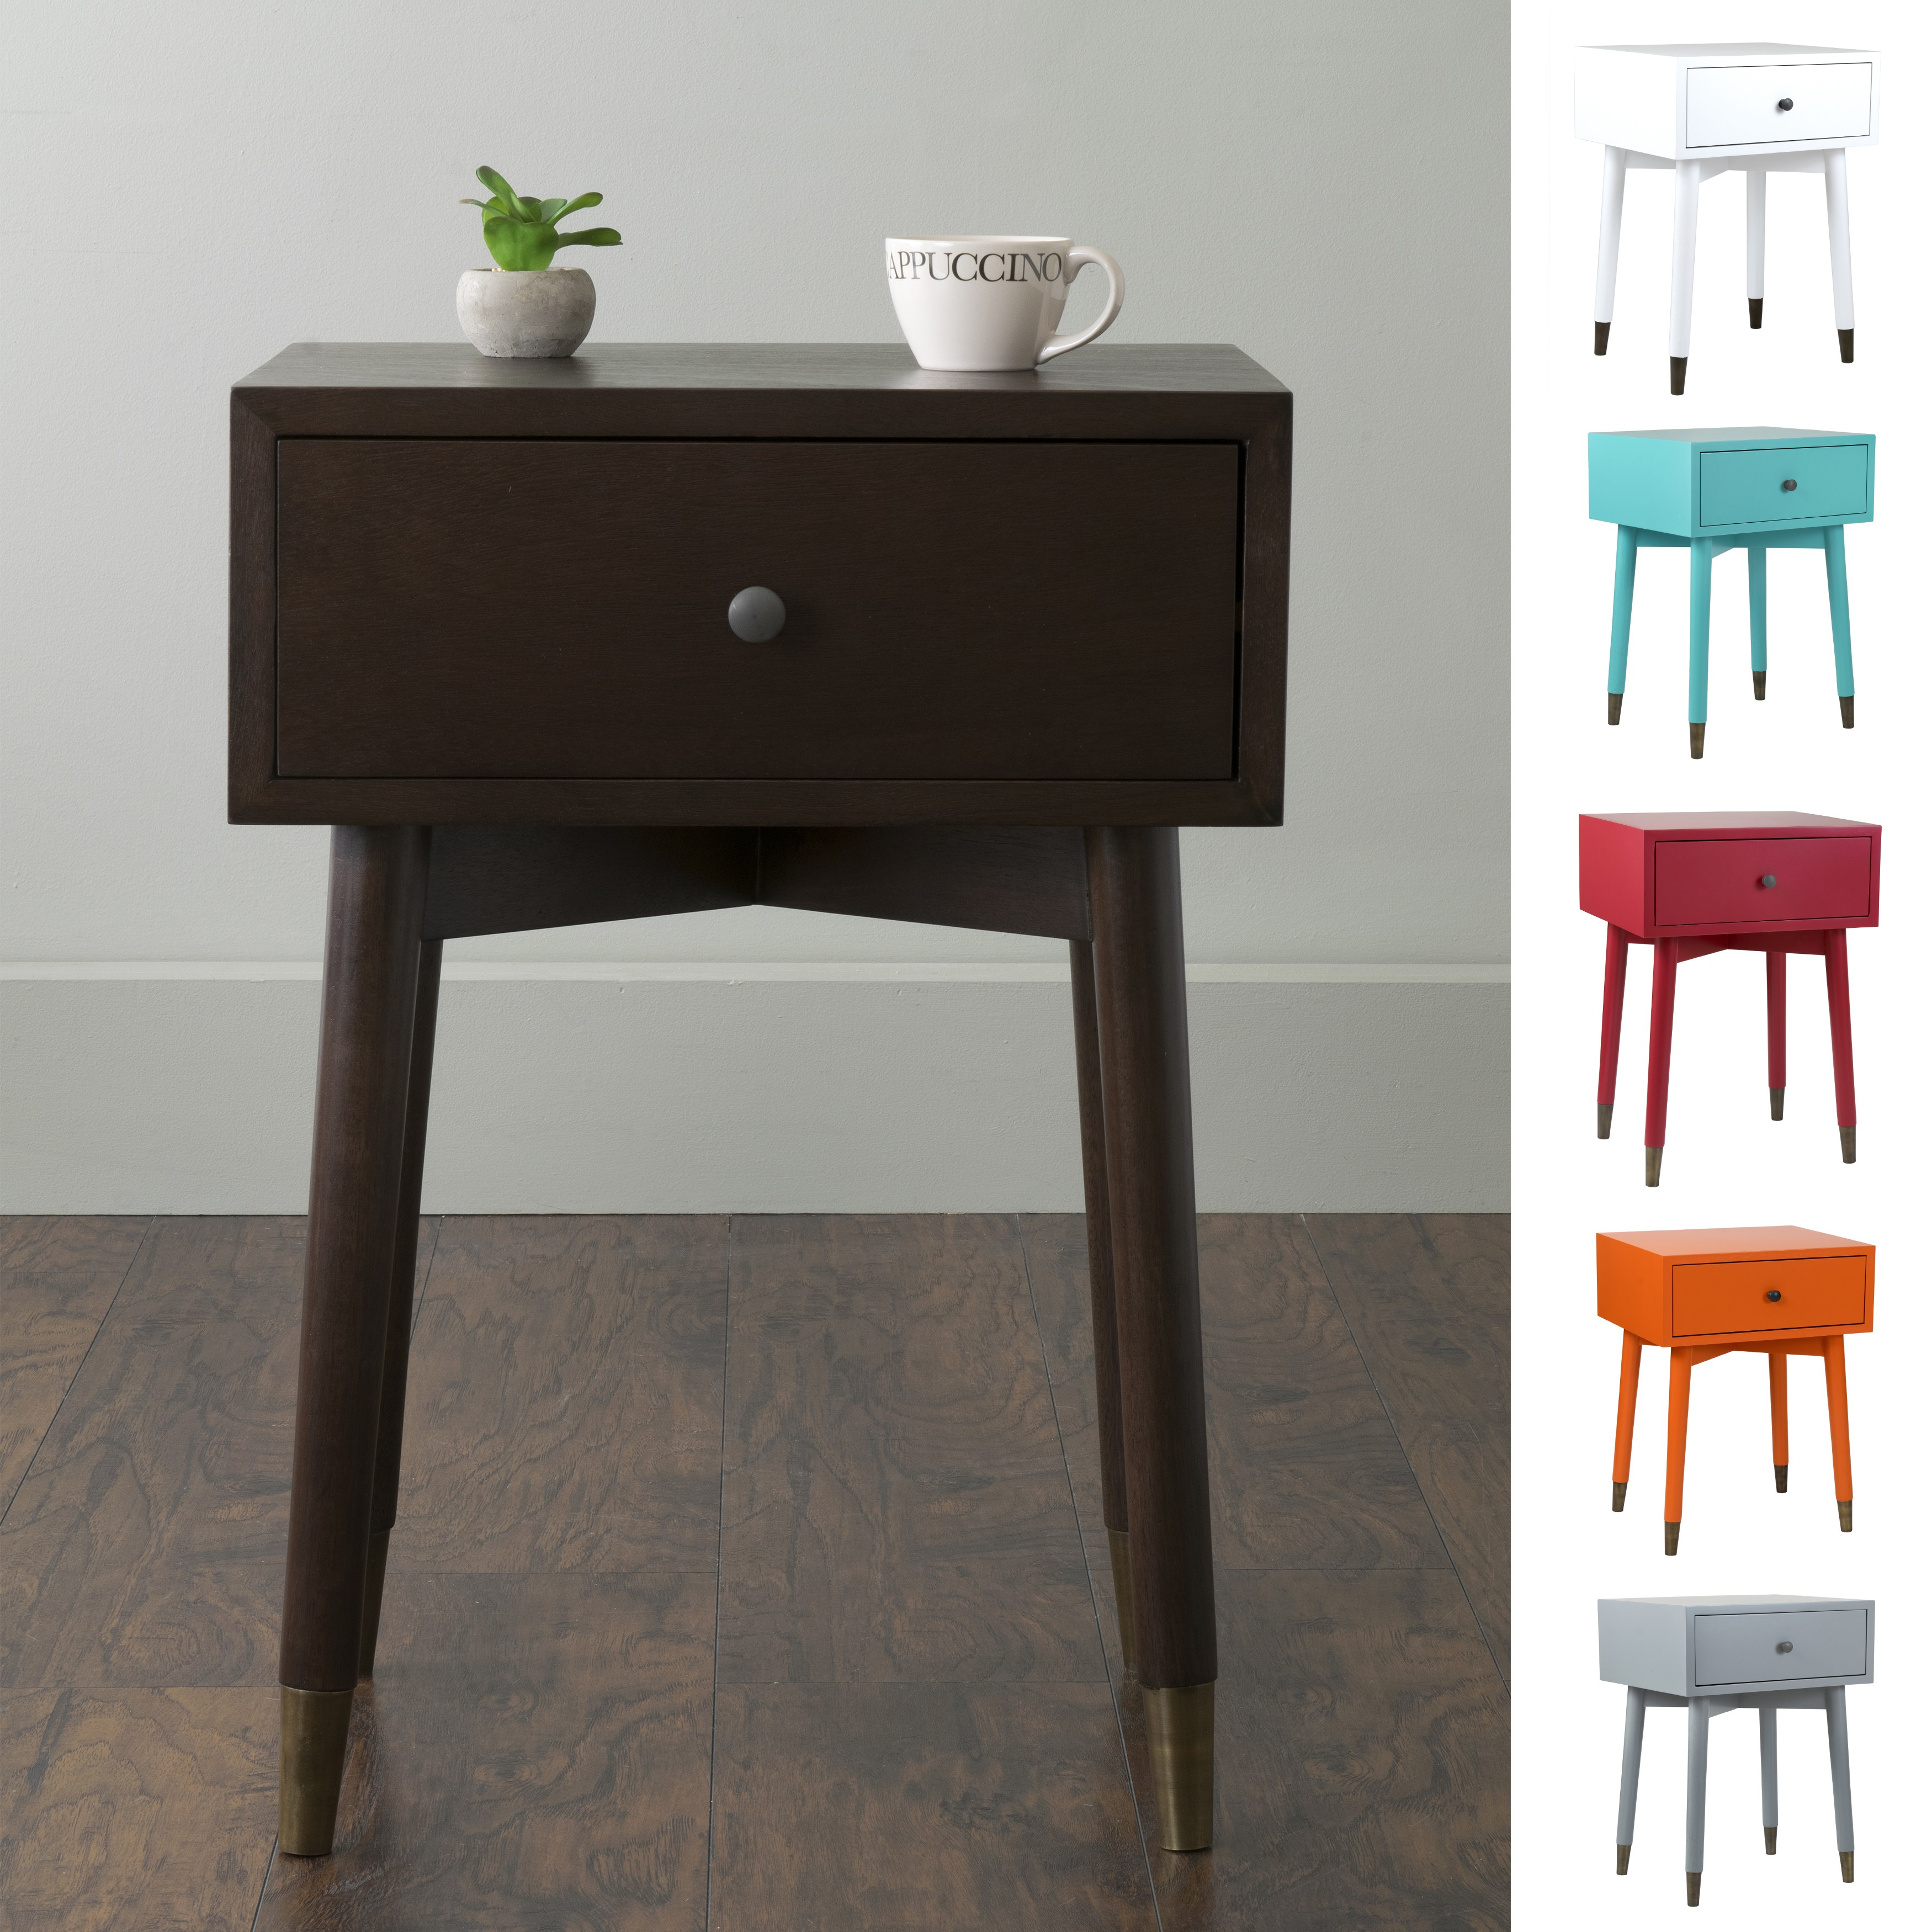 east main weeks acacia wood square accent table free mains round cardboard shipping today retro console usb port bunnings outdoor furniture cover oval antique stone top coffee